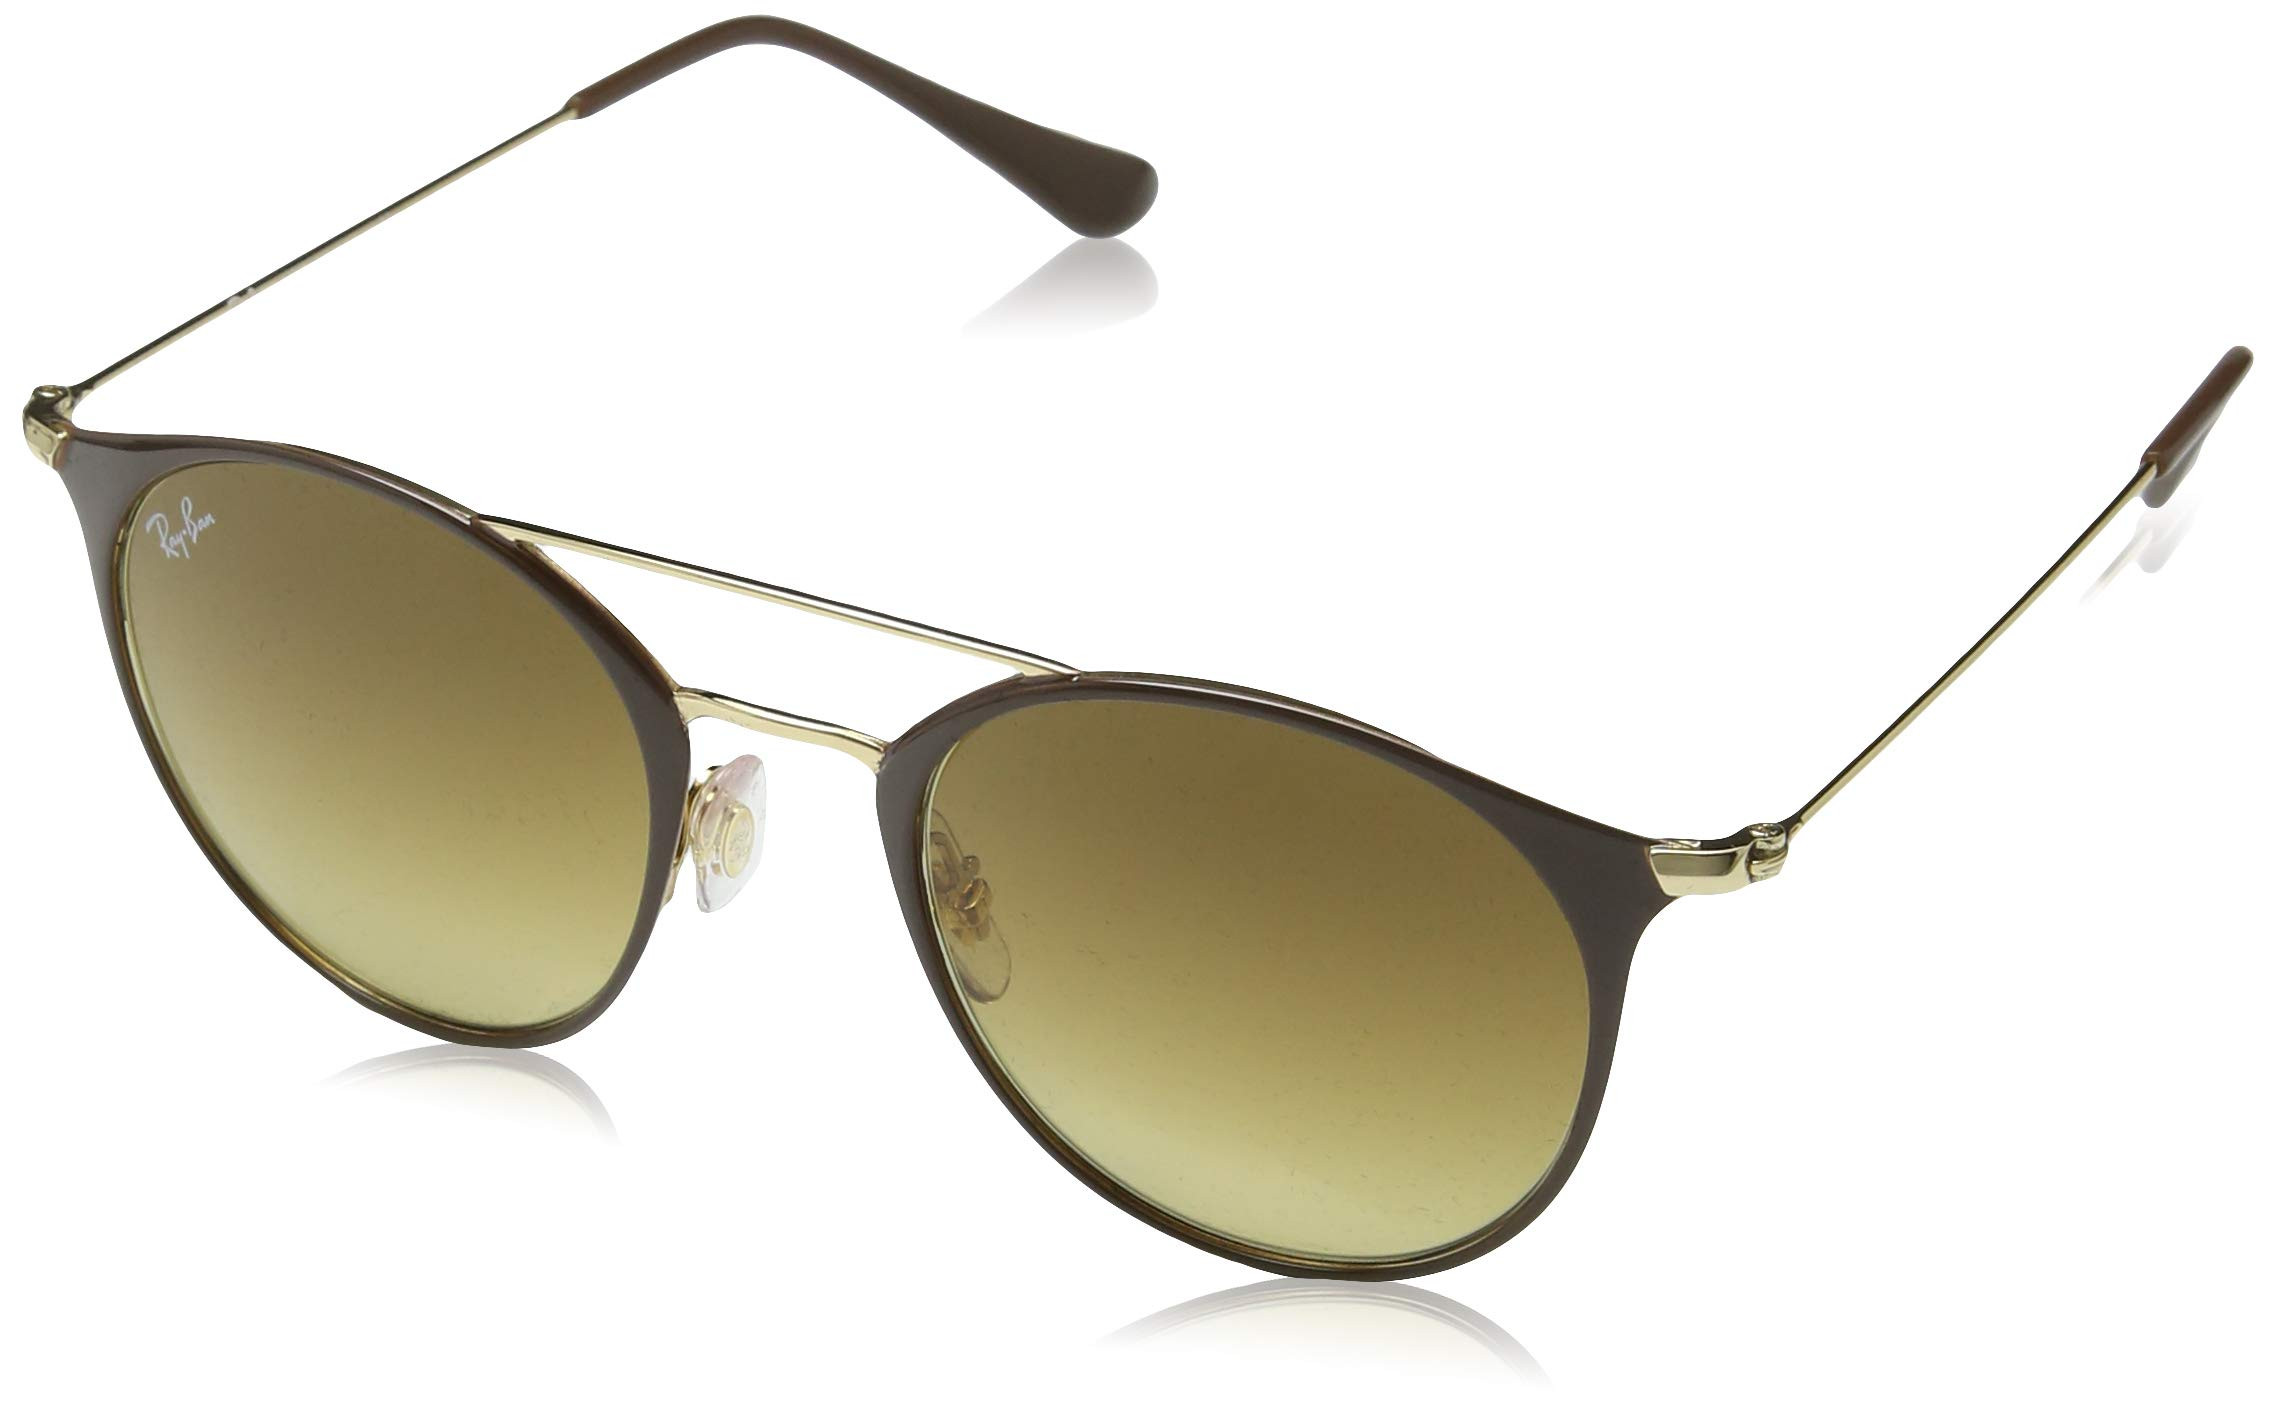 Ray 0rb3514 Demi 147 Montures Lunettes Grissad Rayban 58 ban De Gunmetal greenHomme 71 Gloss mw8Nvn0O